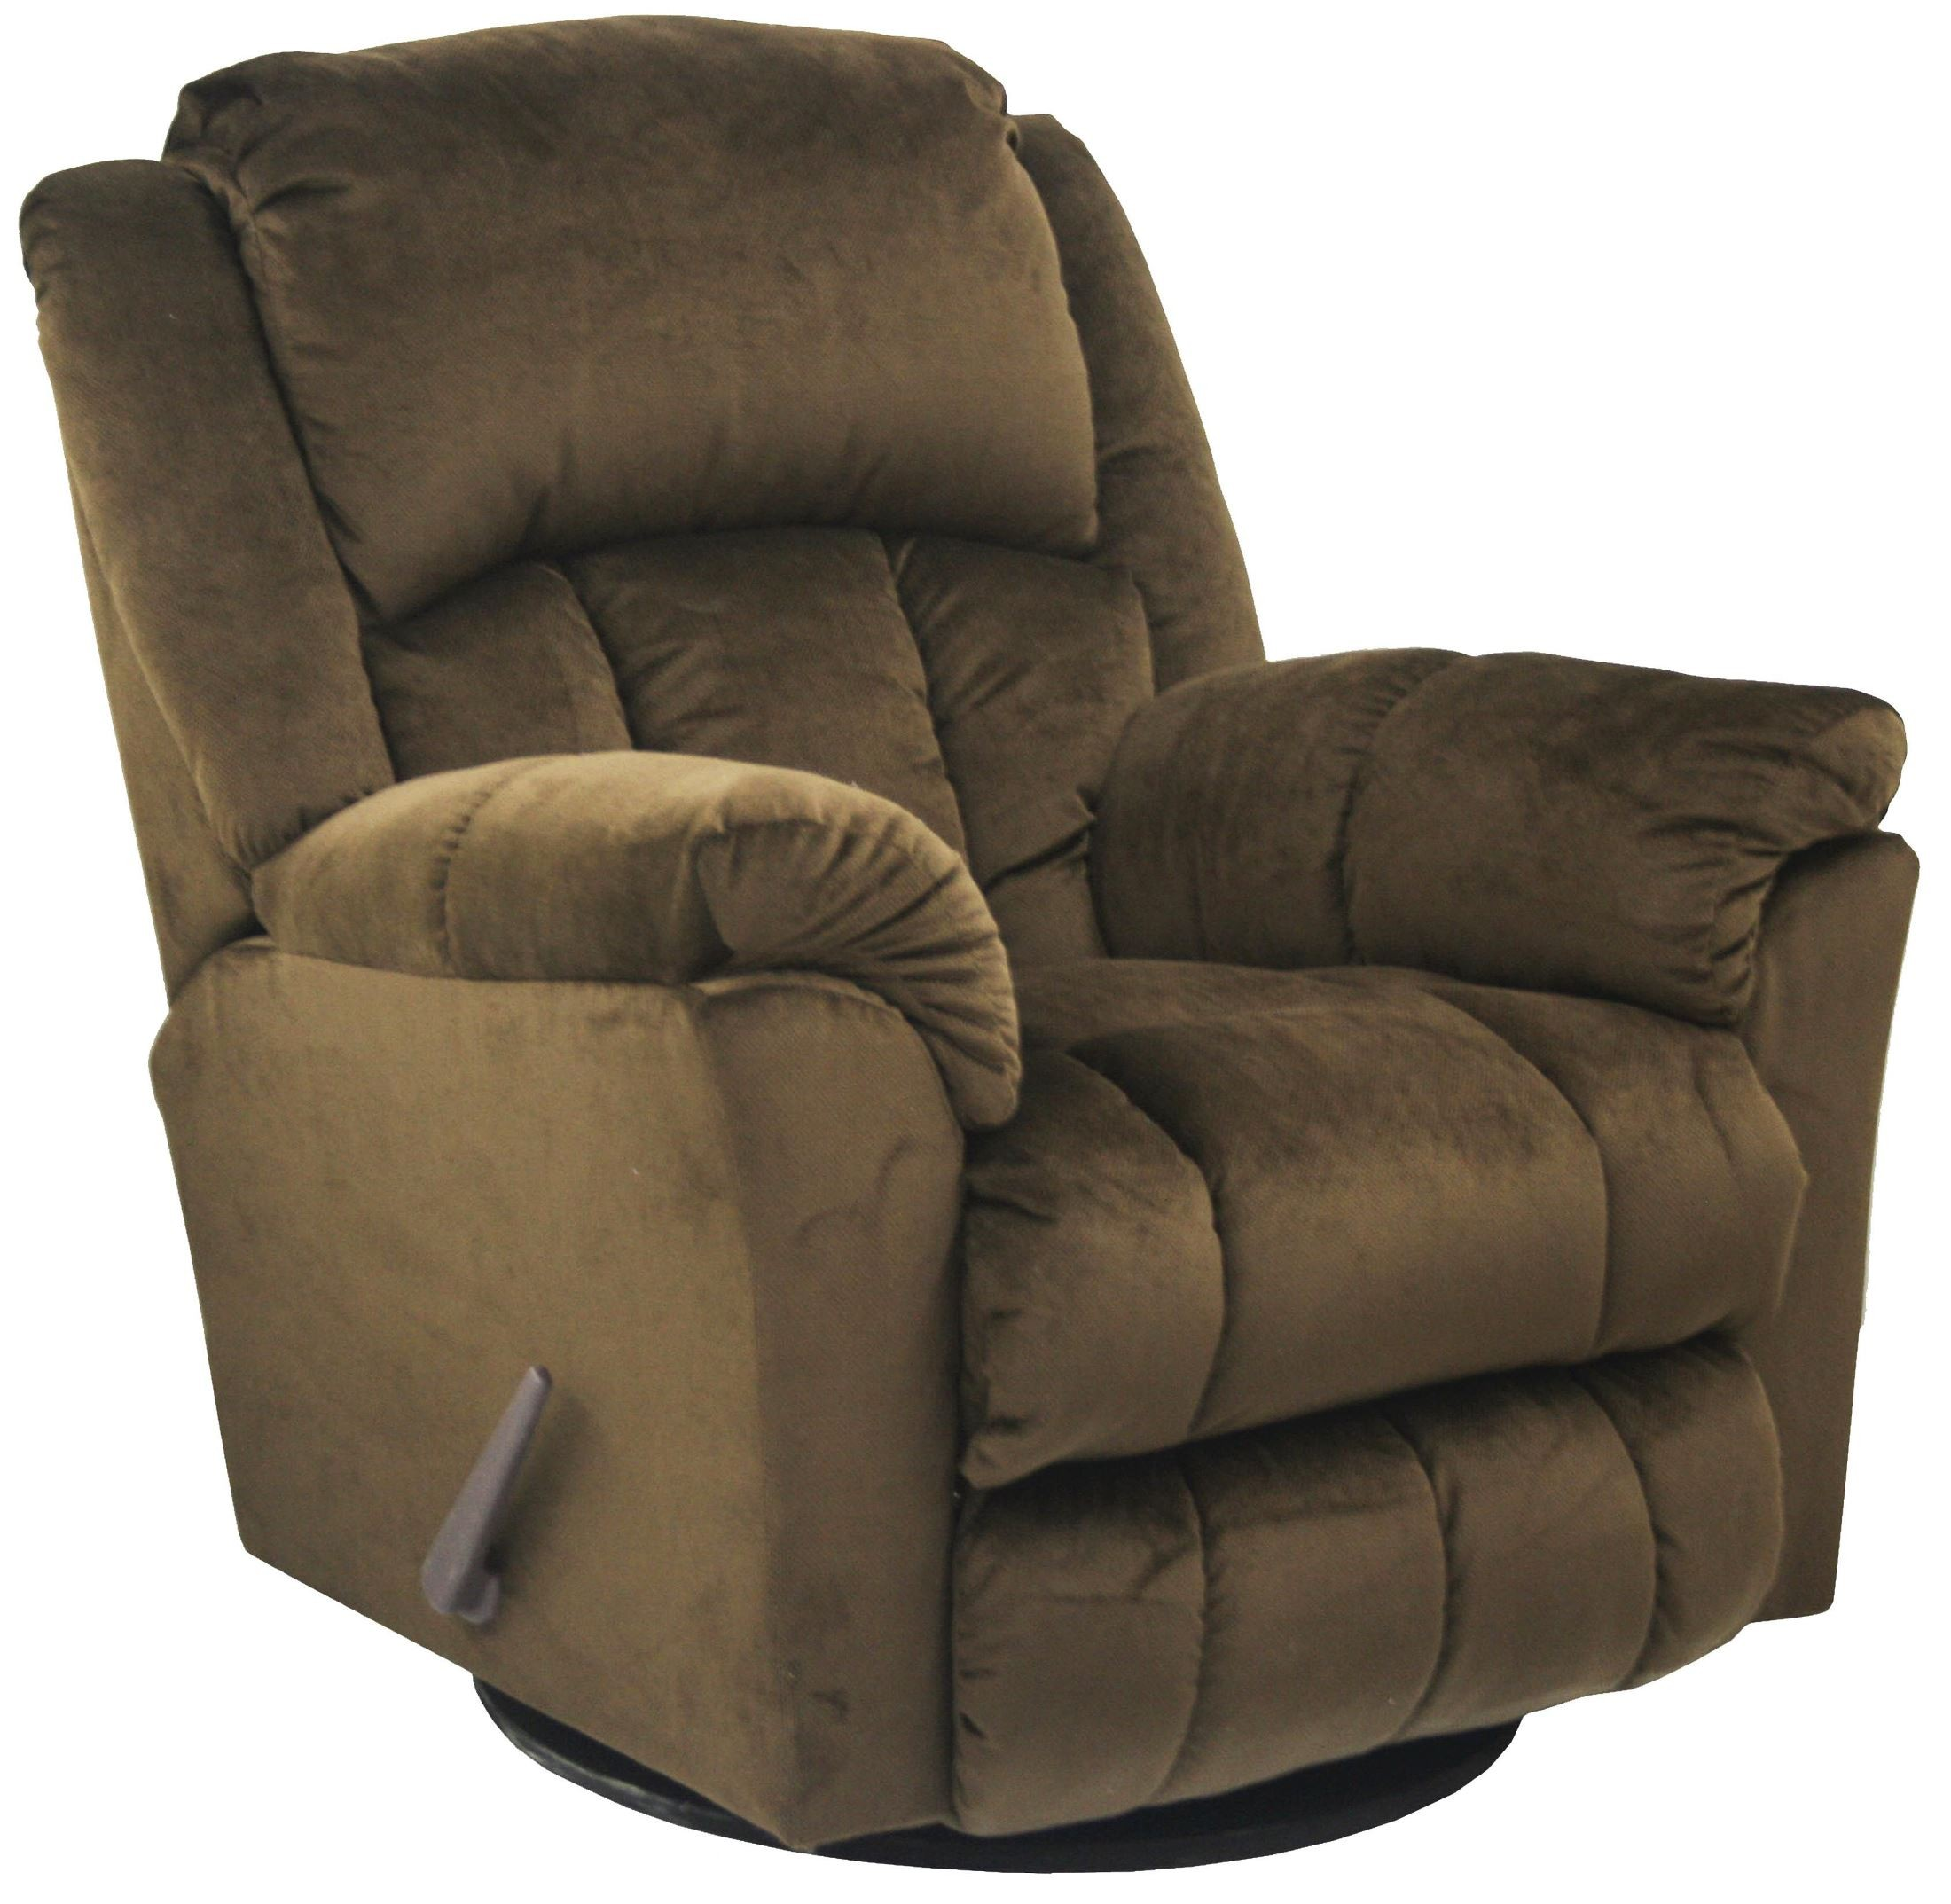 Gibson walnut swivel glider recliner from catnapper for Catnapper cloud nine chaise recliner